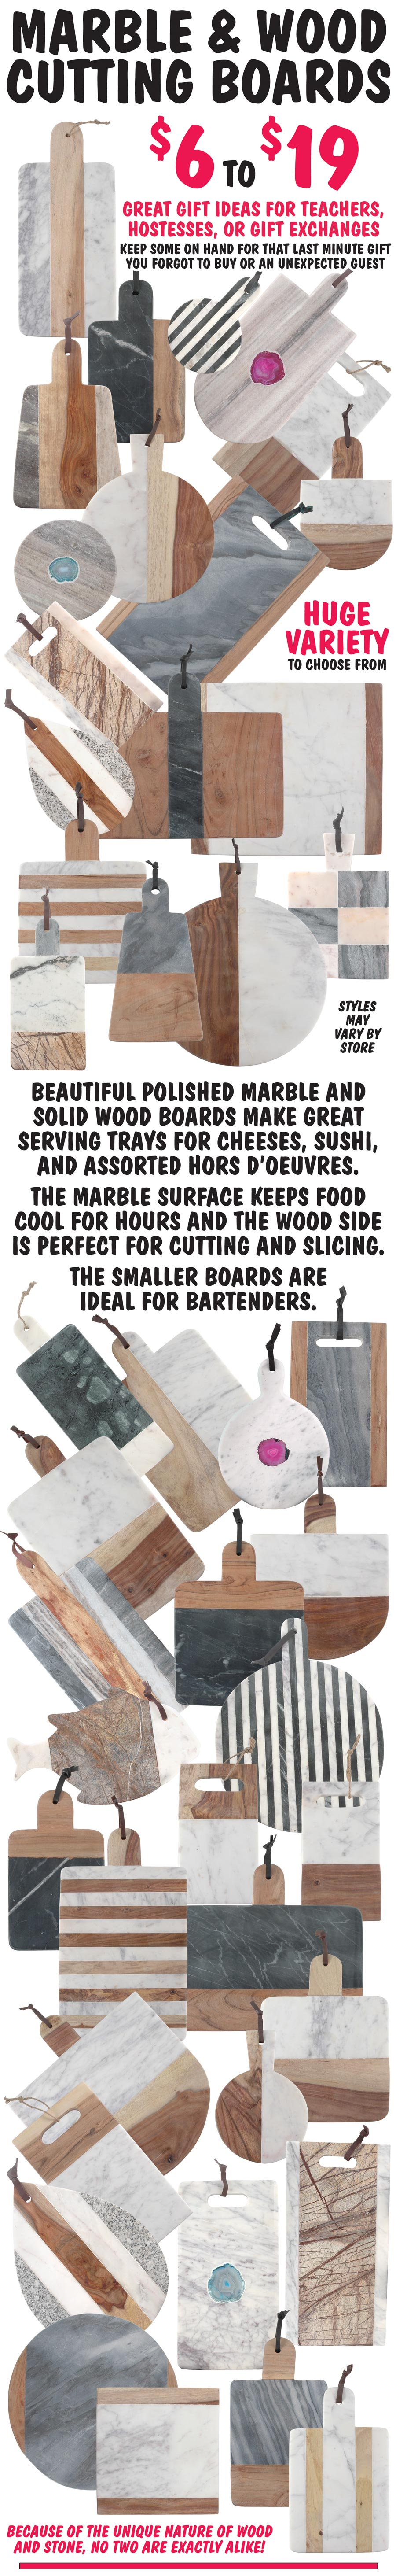 Marble and Wood Cutting Boards - $6 to $19 - HUGE Variety of Styles